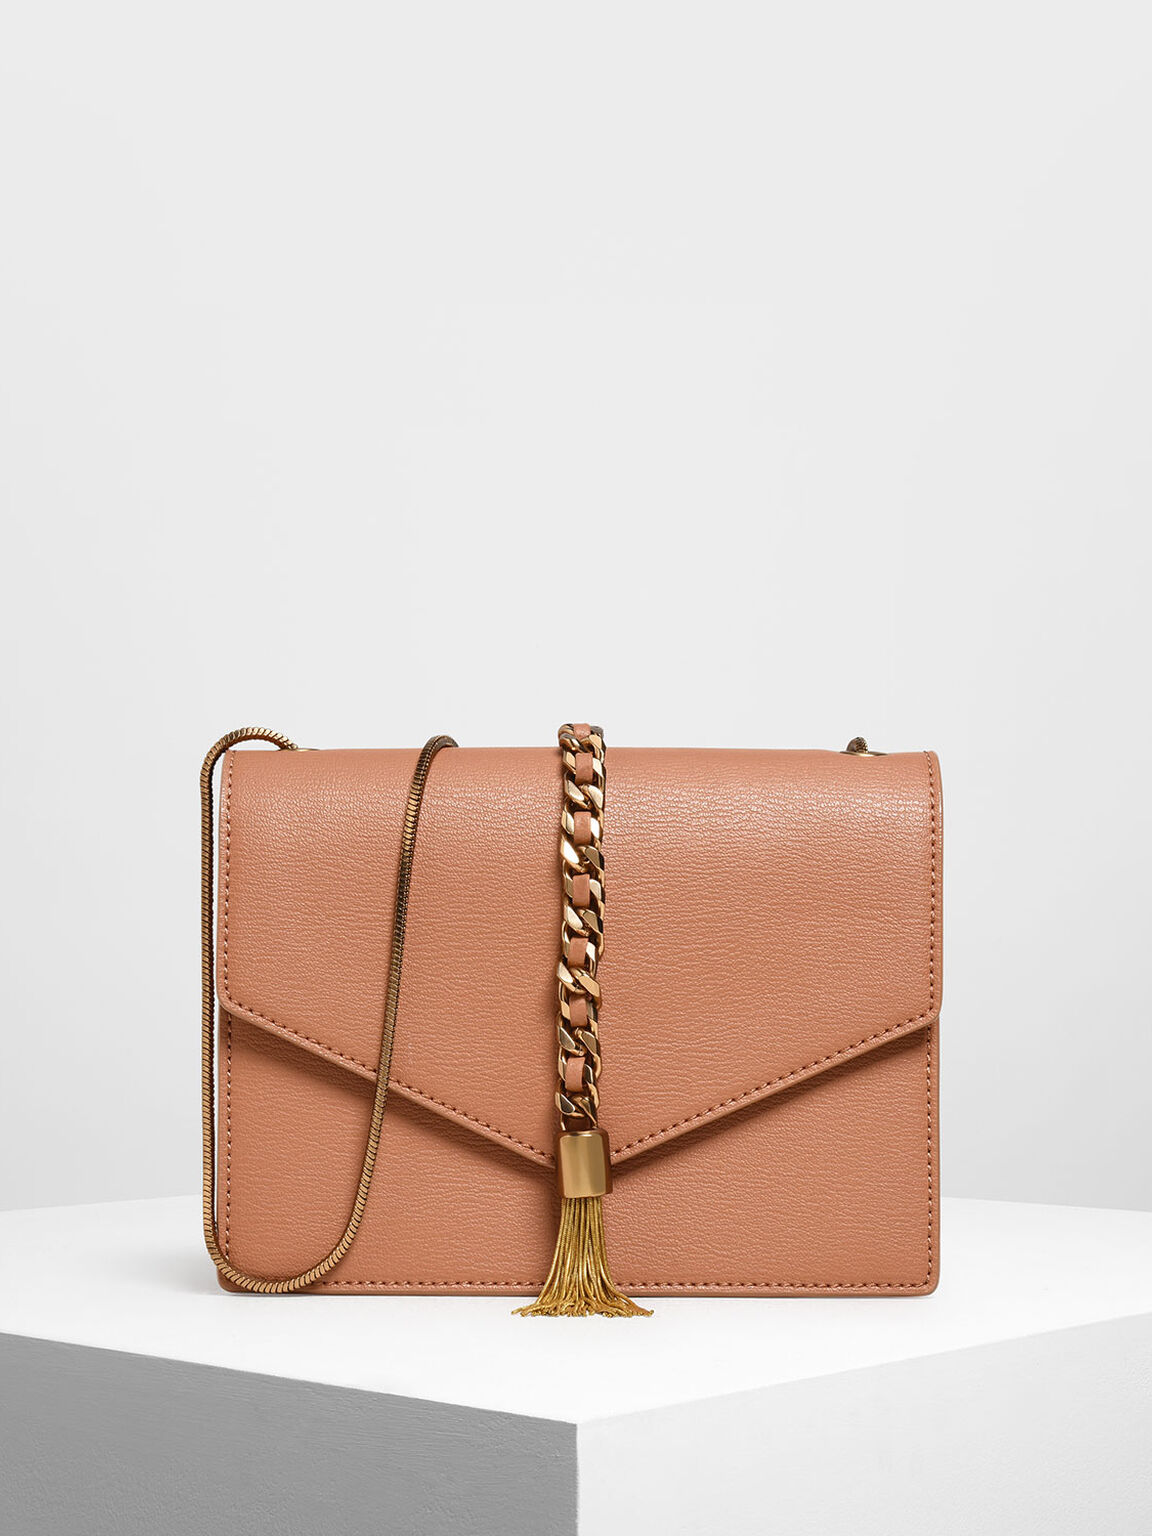 Tassel Shoulder Bag, Clay, hi-res